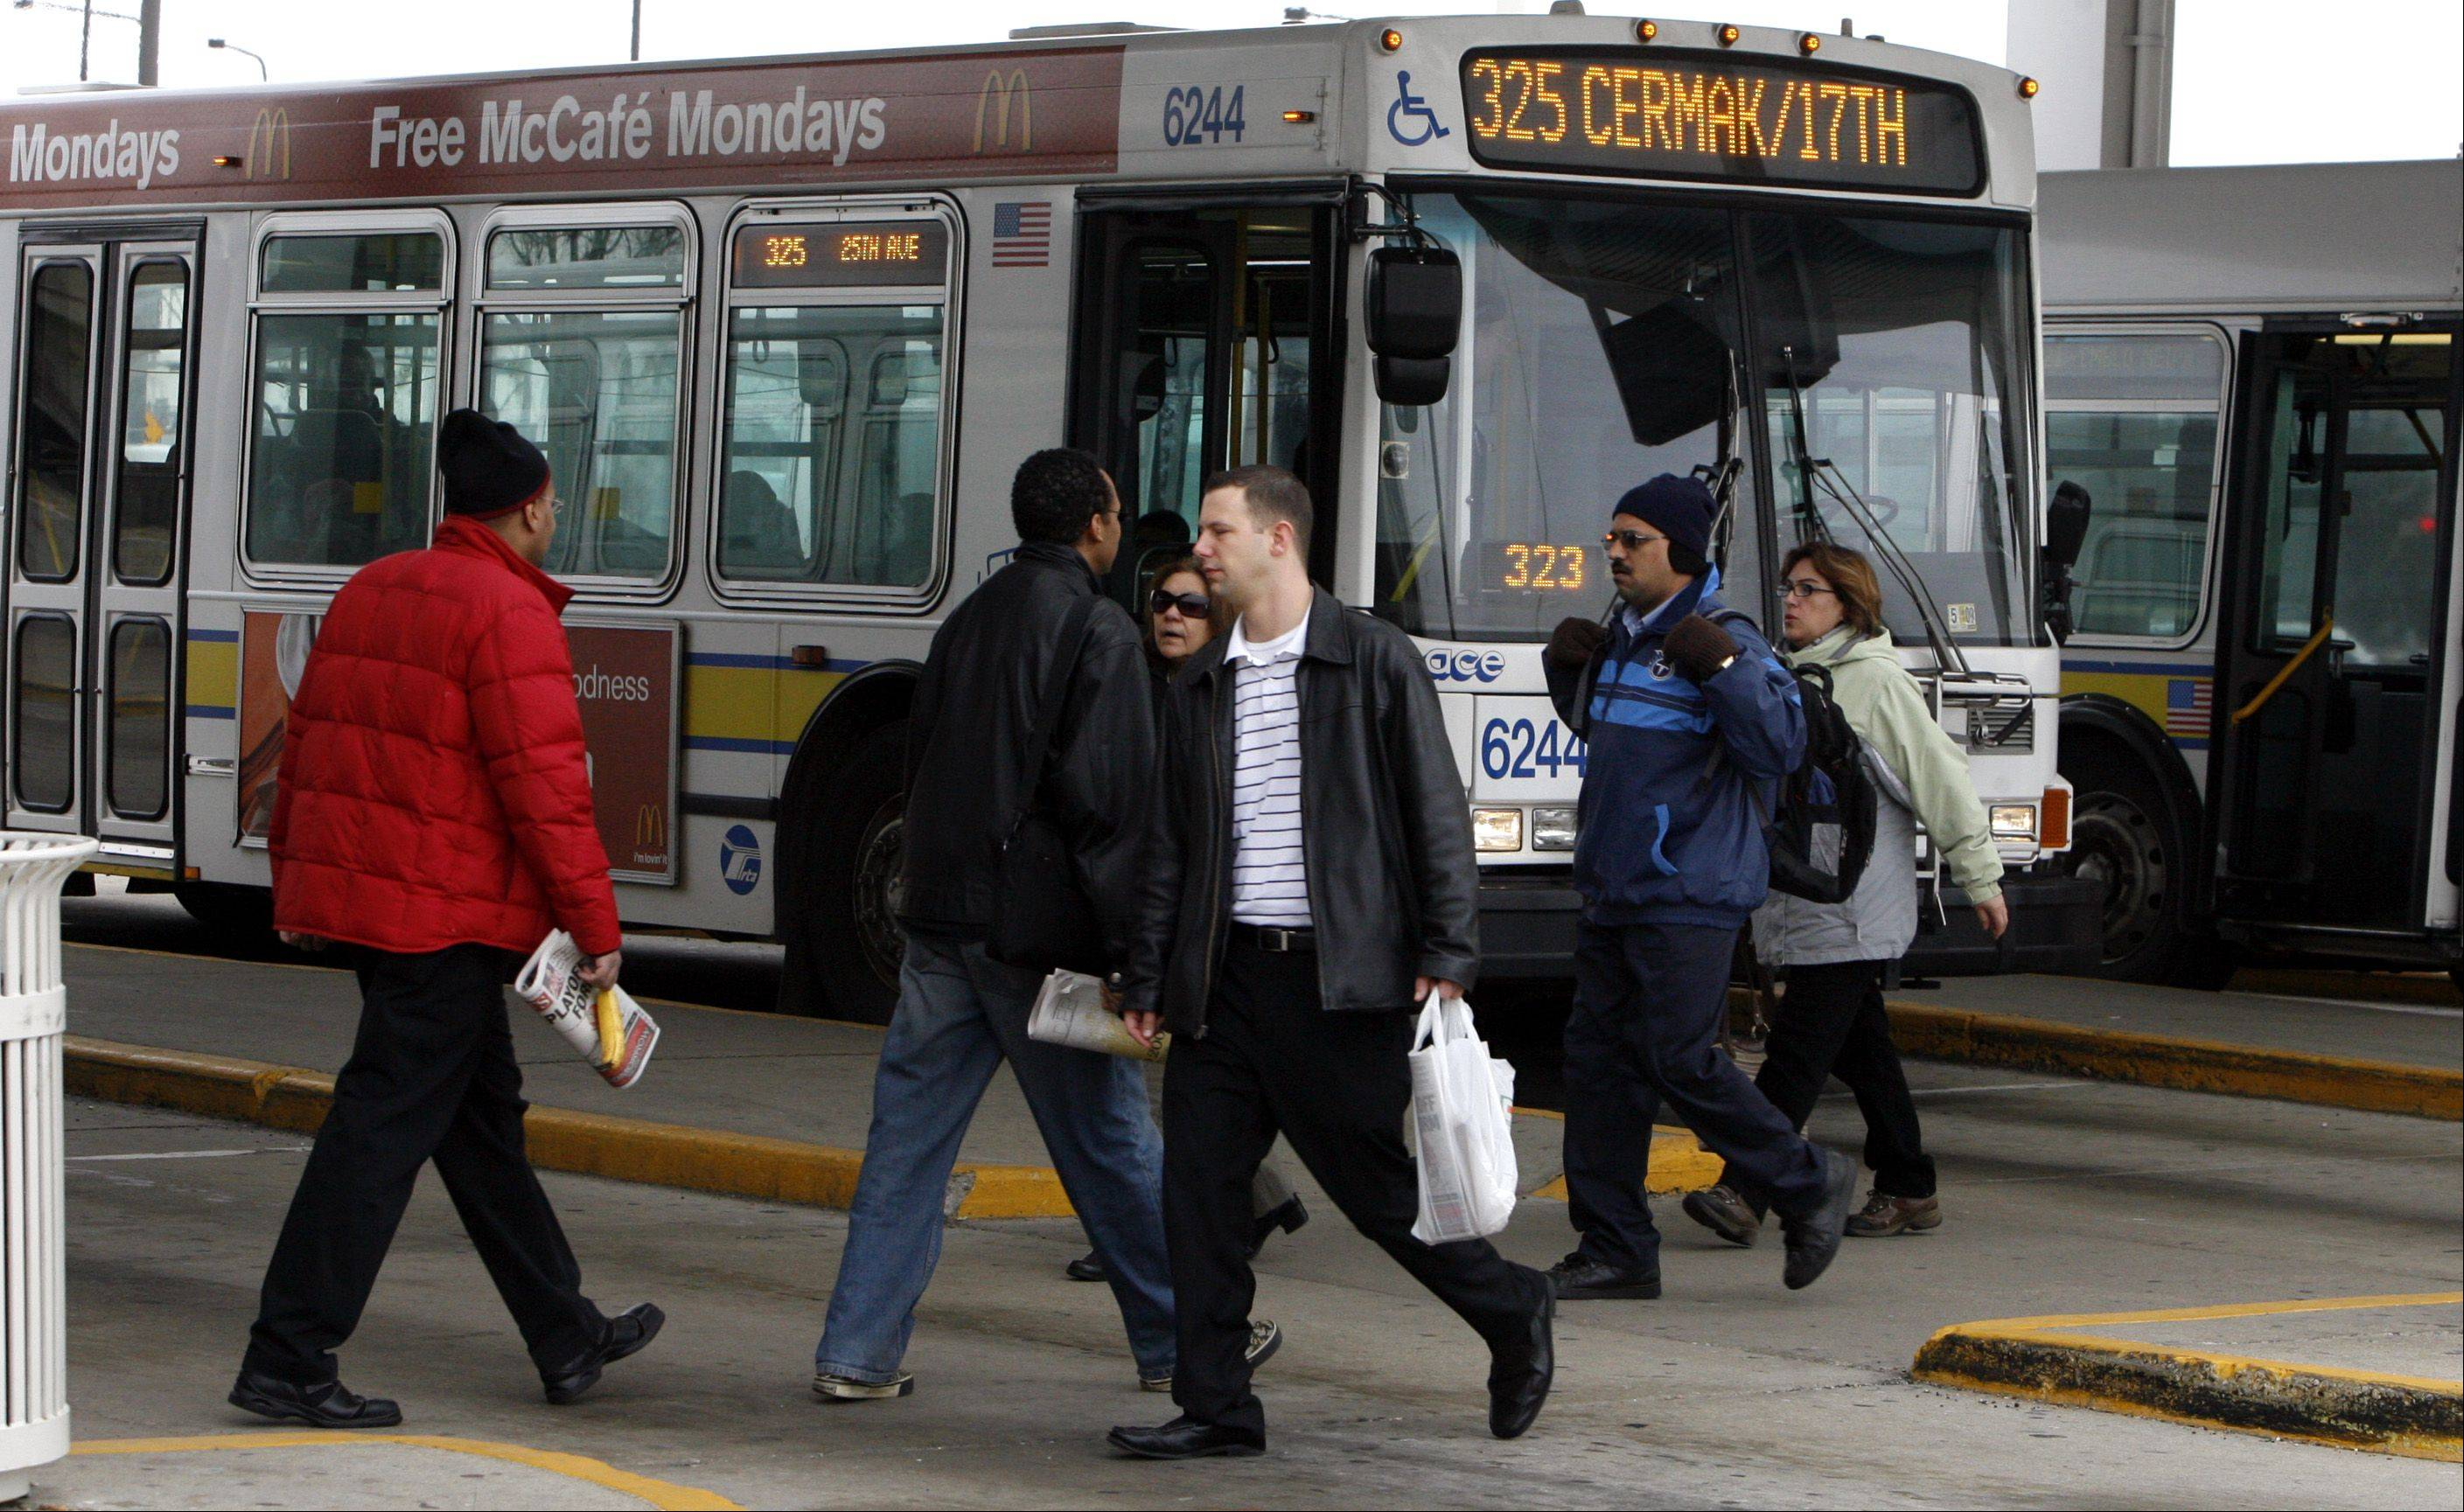 Daily Herald File Photo The city and suburbs have a smooth relationship at the Rosemont CTA station but transit funding issues are creating divisions within the region.